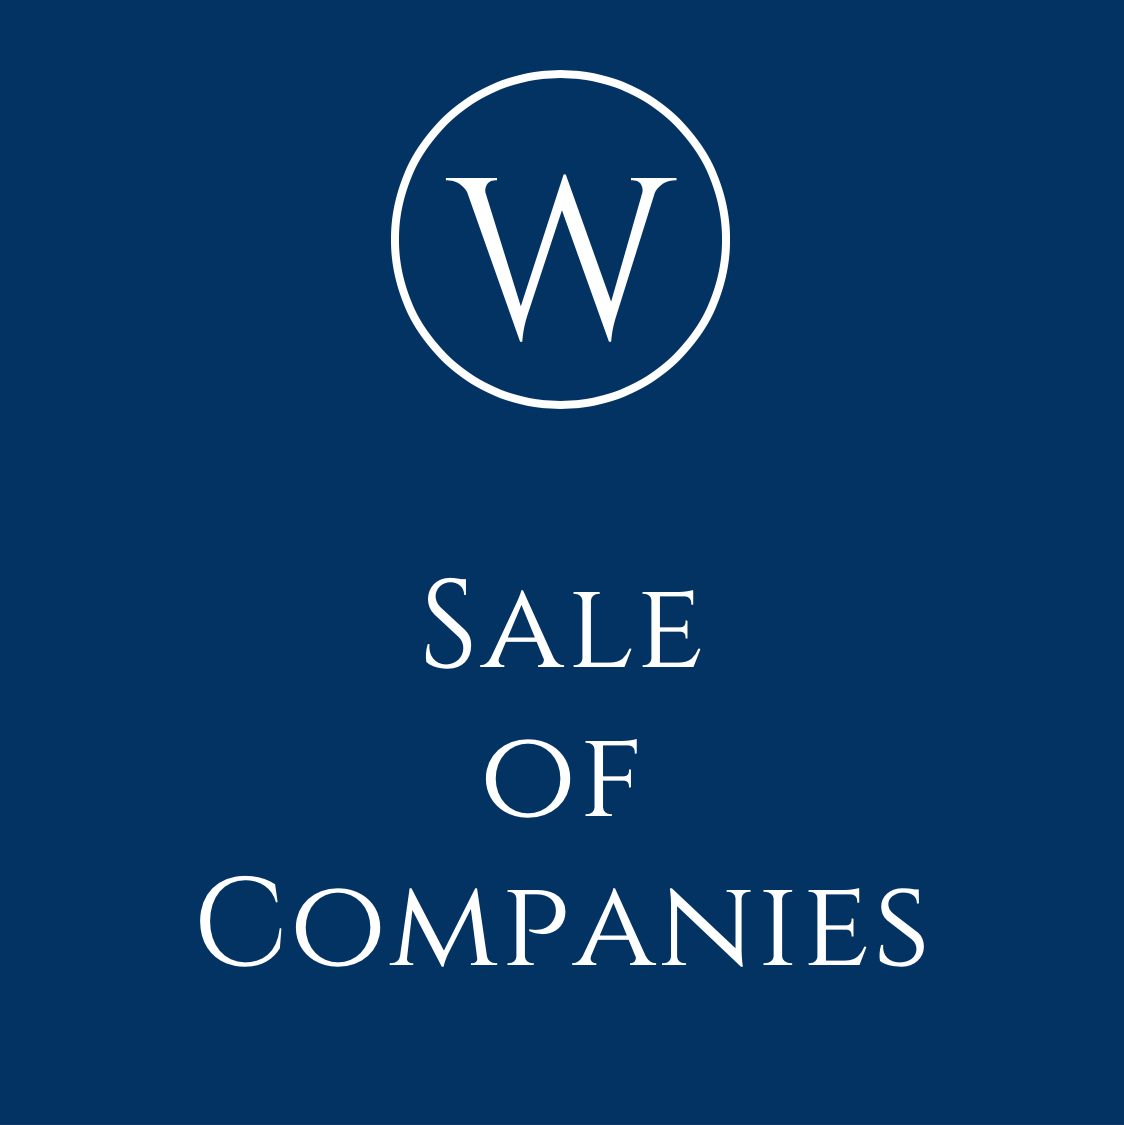 Advice on the sale of companies